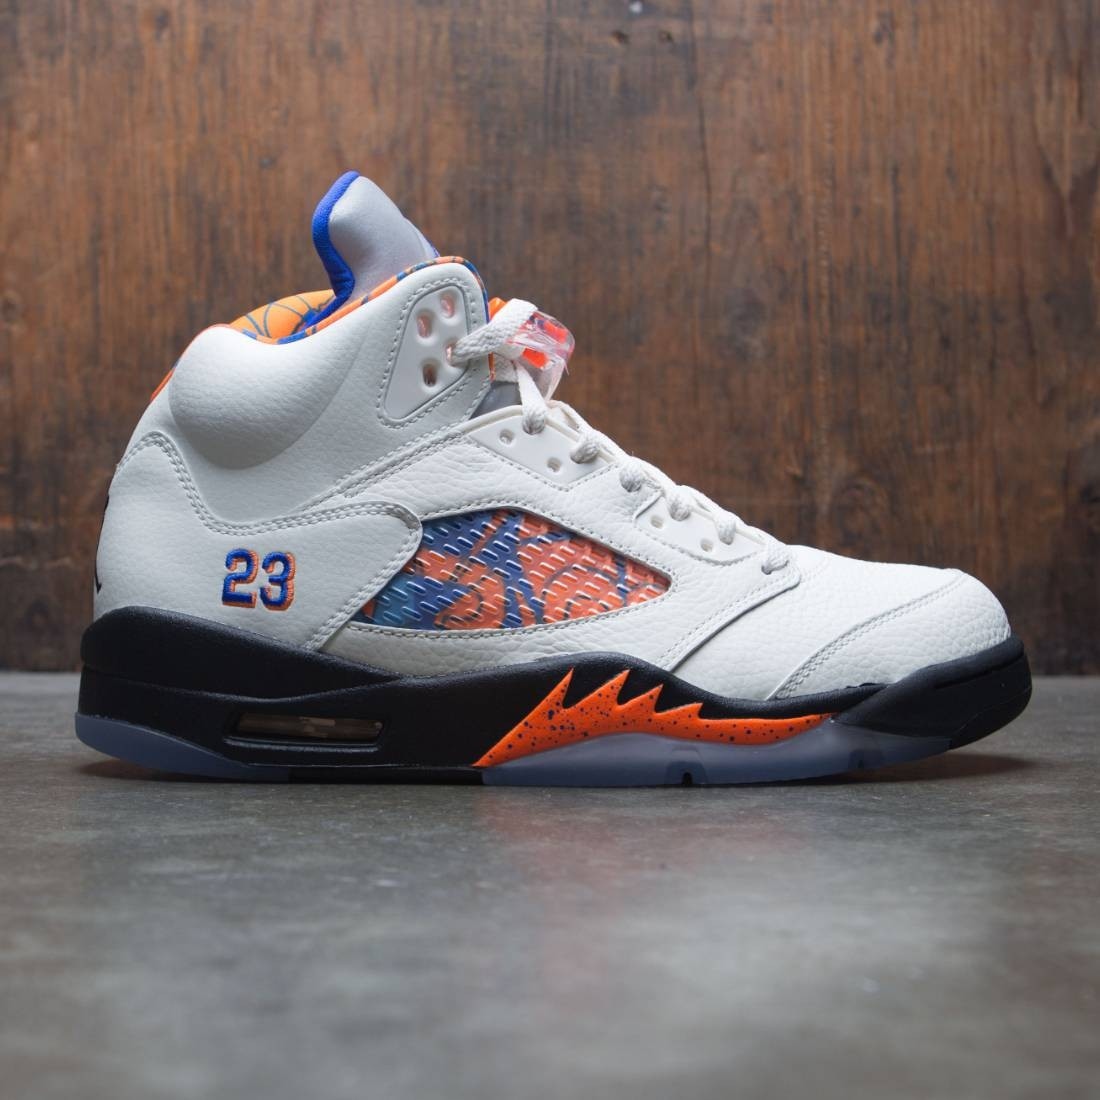 ed277c474c4951 jordan men air jordan 5 retro sail racer blue cone black